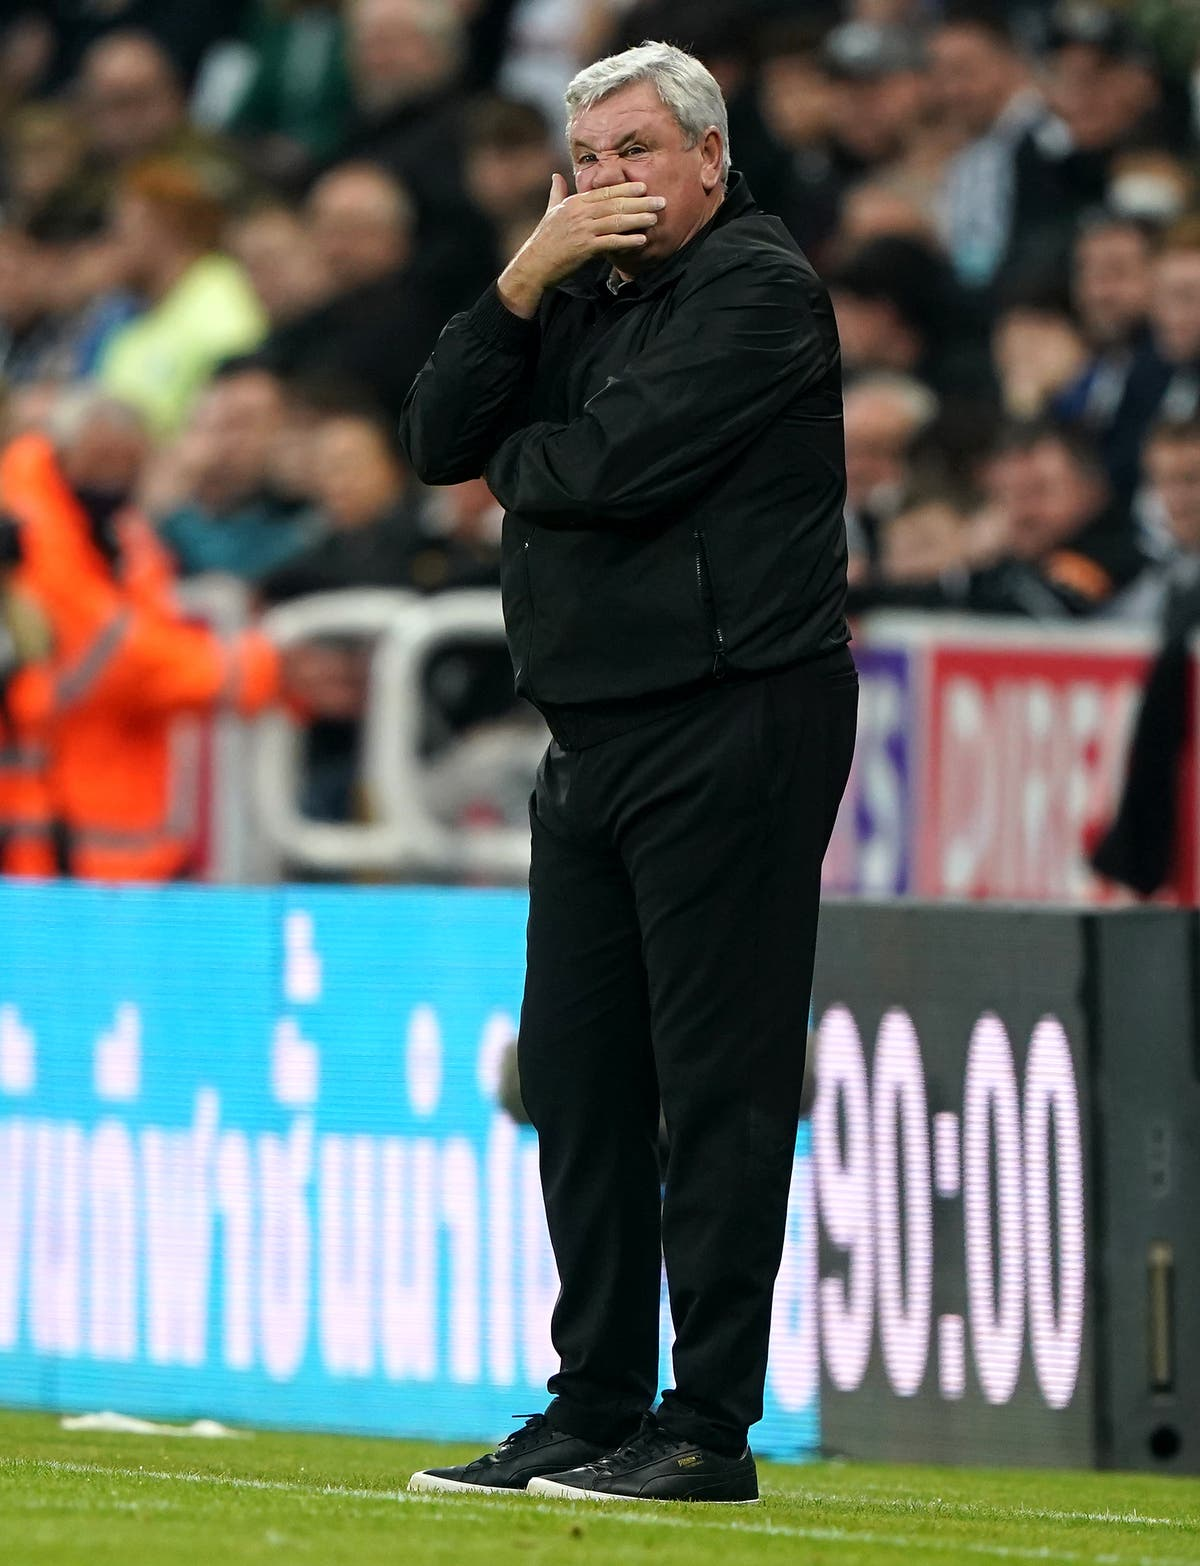 Steve Bruce confident Newcastle can avoid relegation as big day ends in defeat